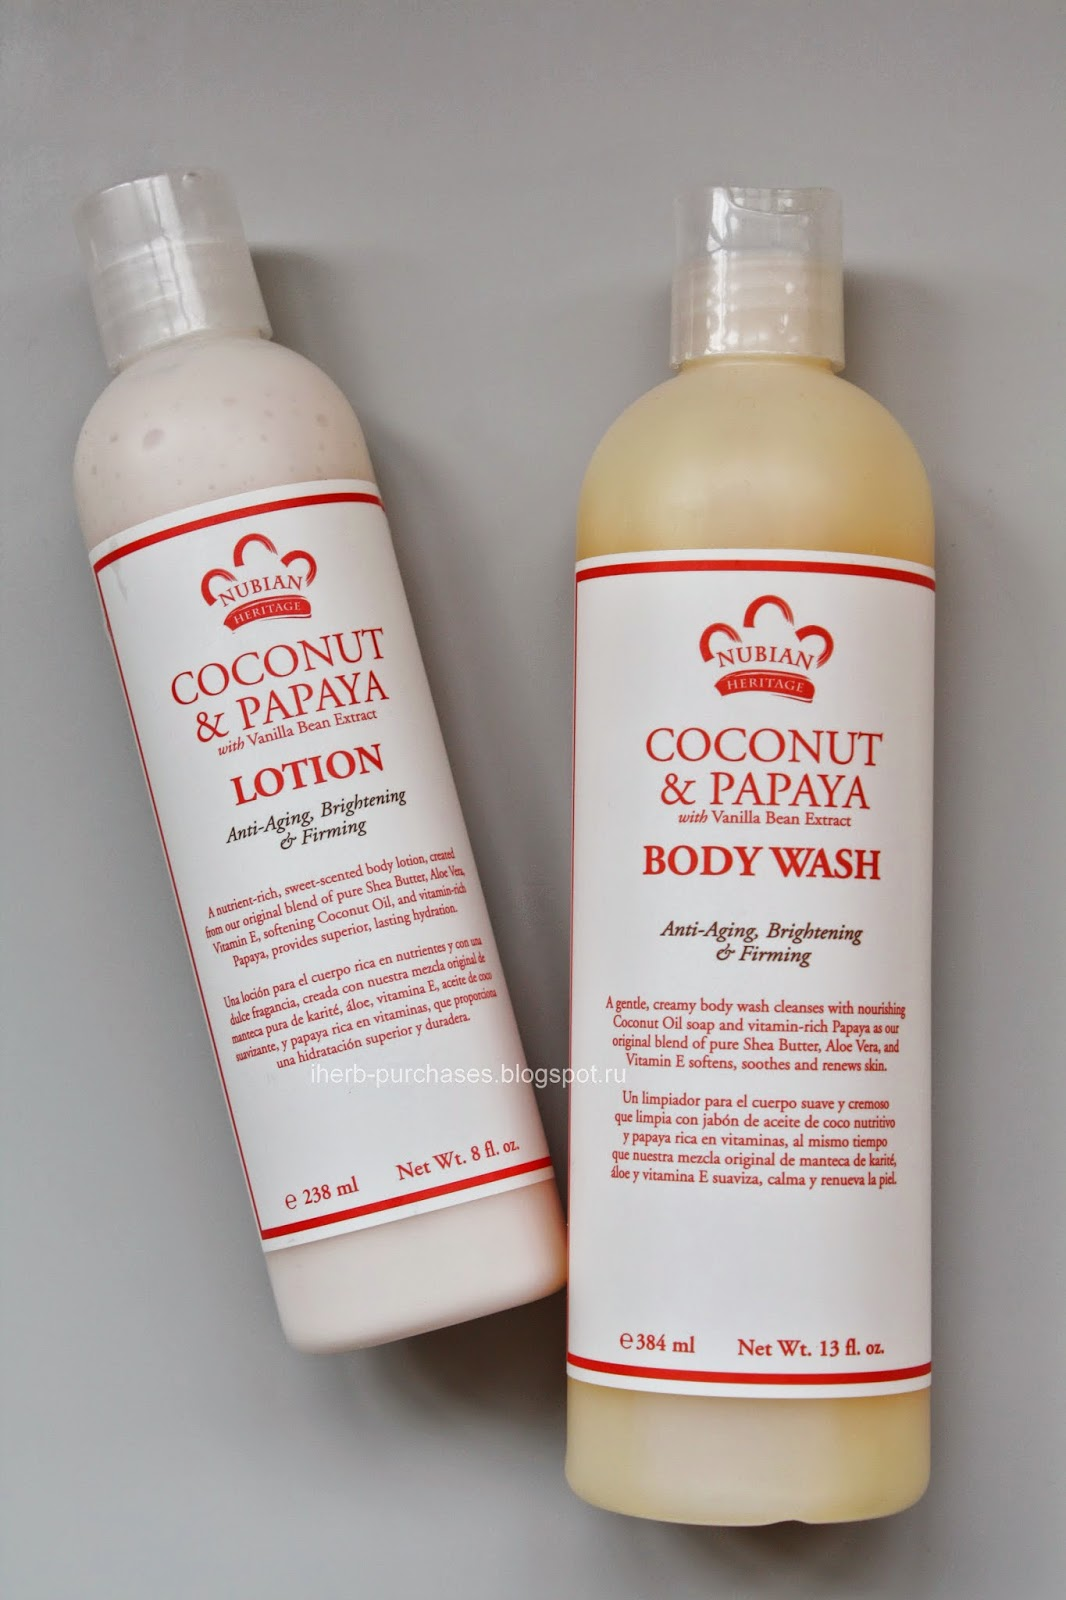 Nubian Heritage, Body Wash, Coconut & Papaya, 13 fl oz (384 ml) + Nubian Heritage, Coconut & Papaya Lotion, 8 fl oz (238 ml)